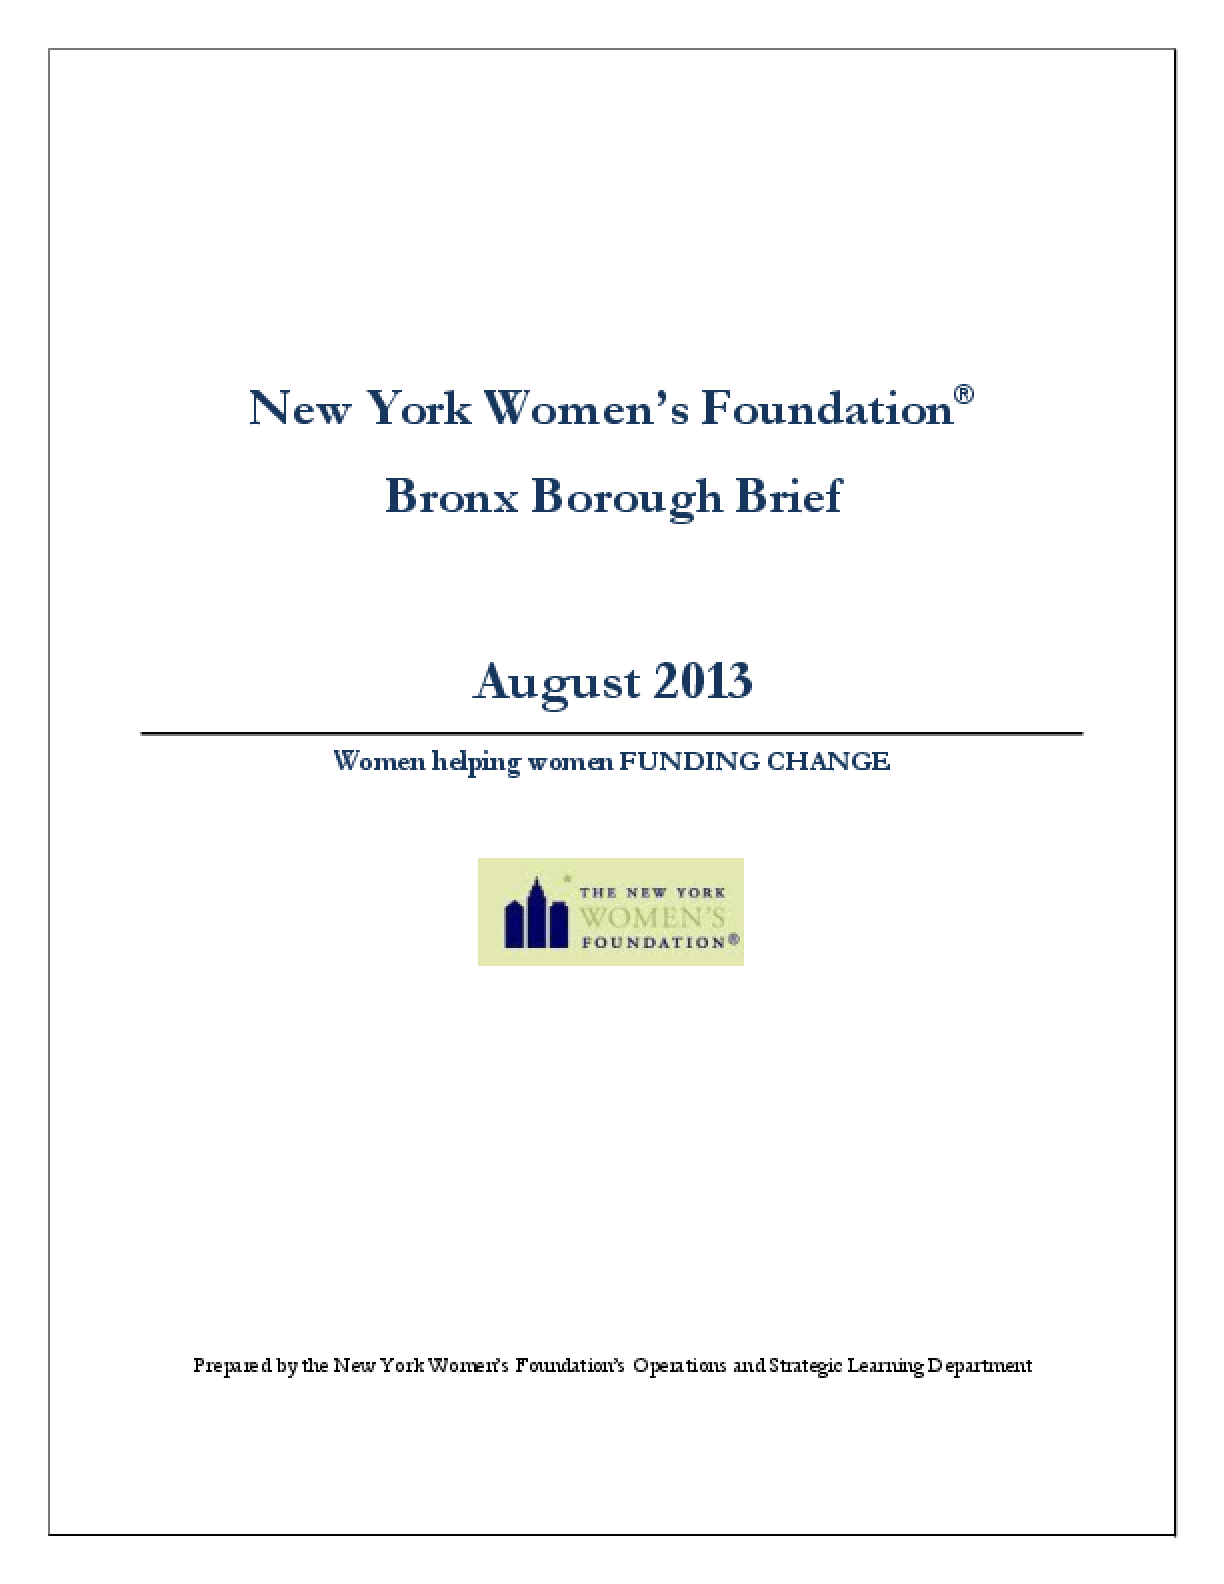 New York Women's Foundation Bronx Borough Brief